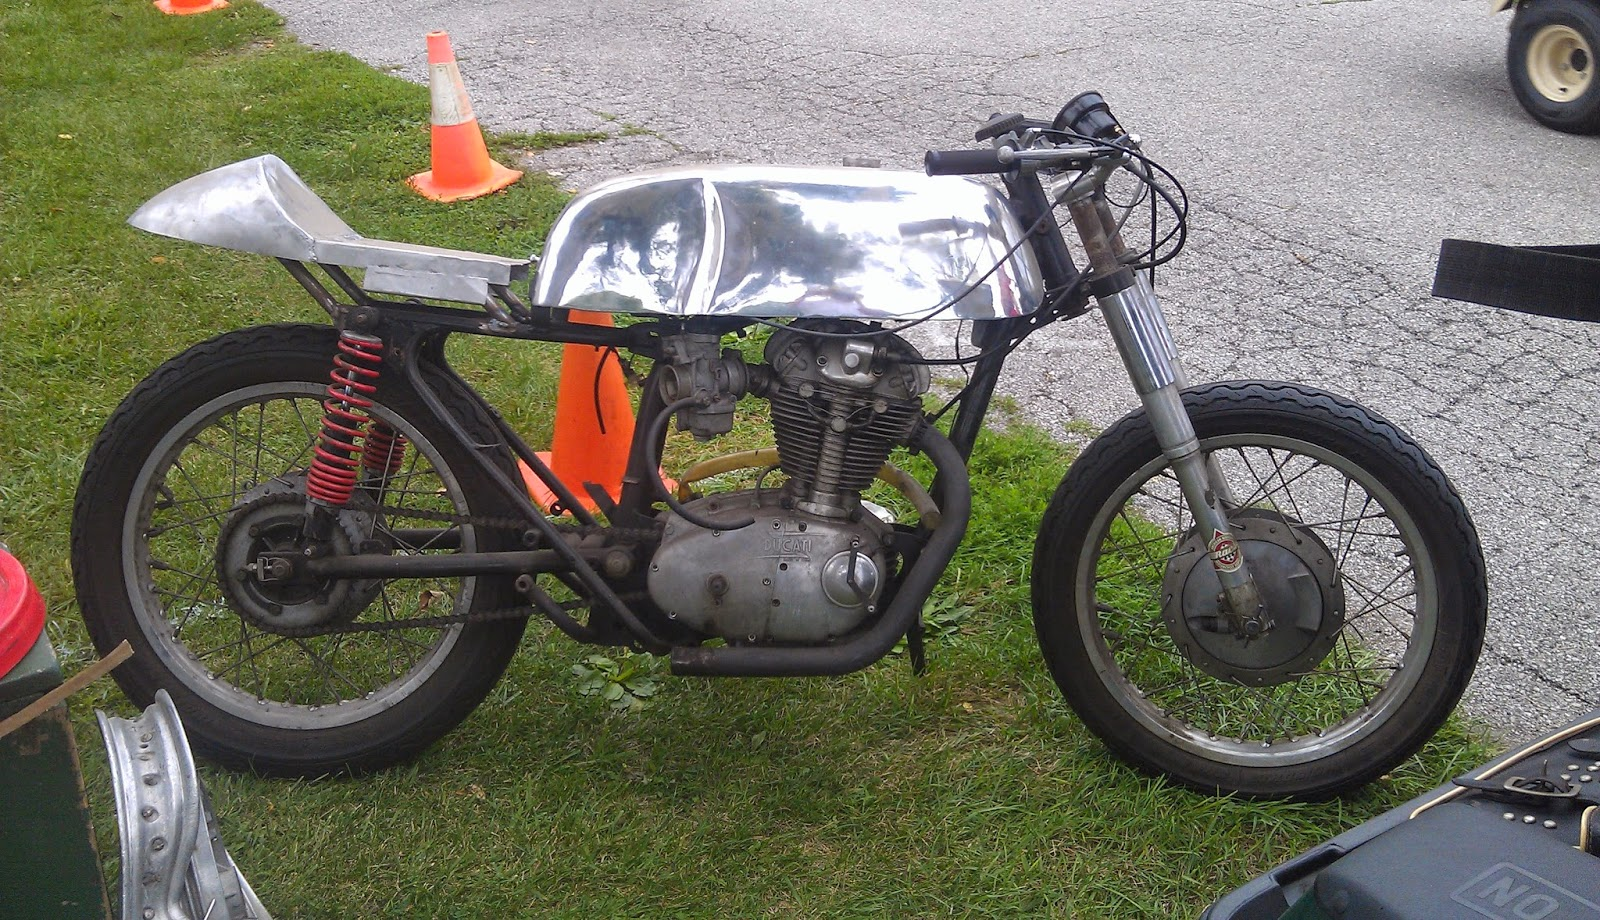 davenport swap meet 2014 motorcycle